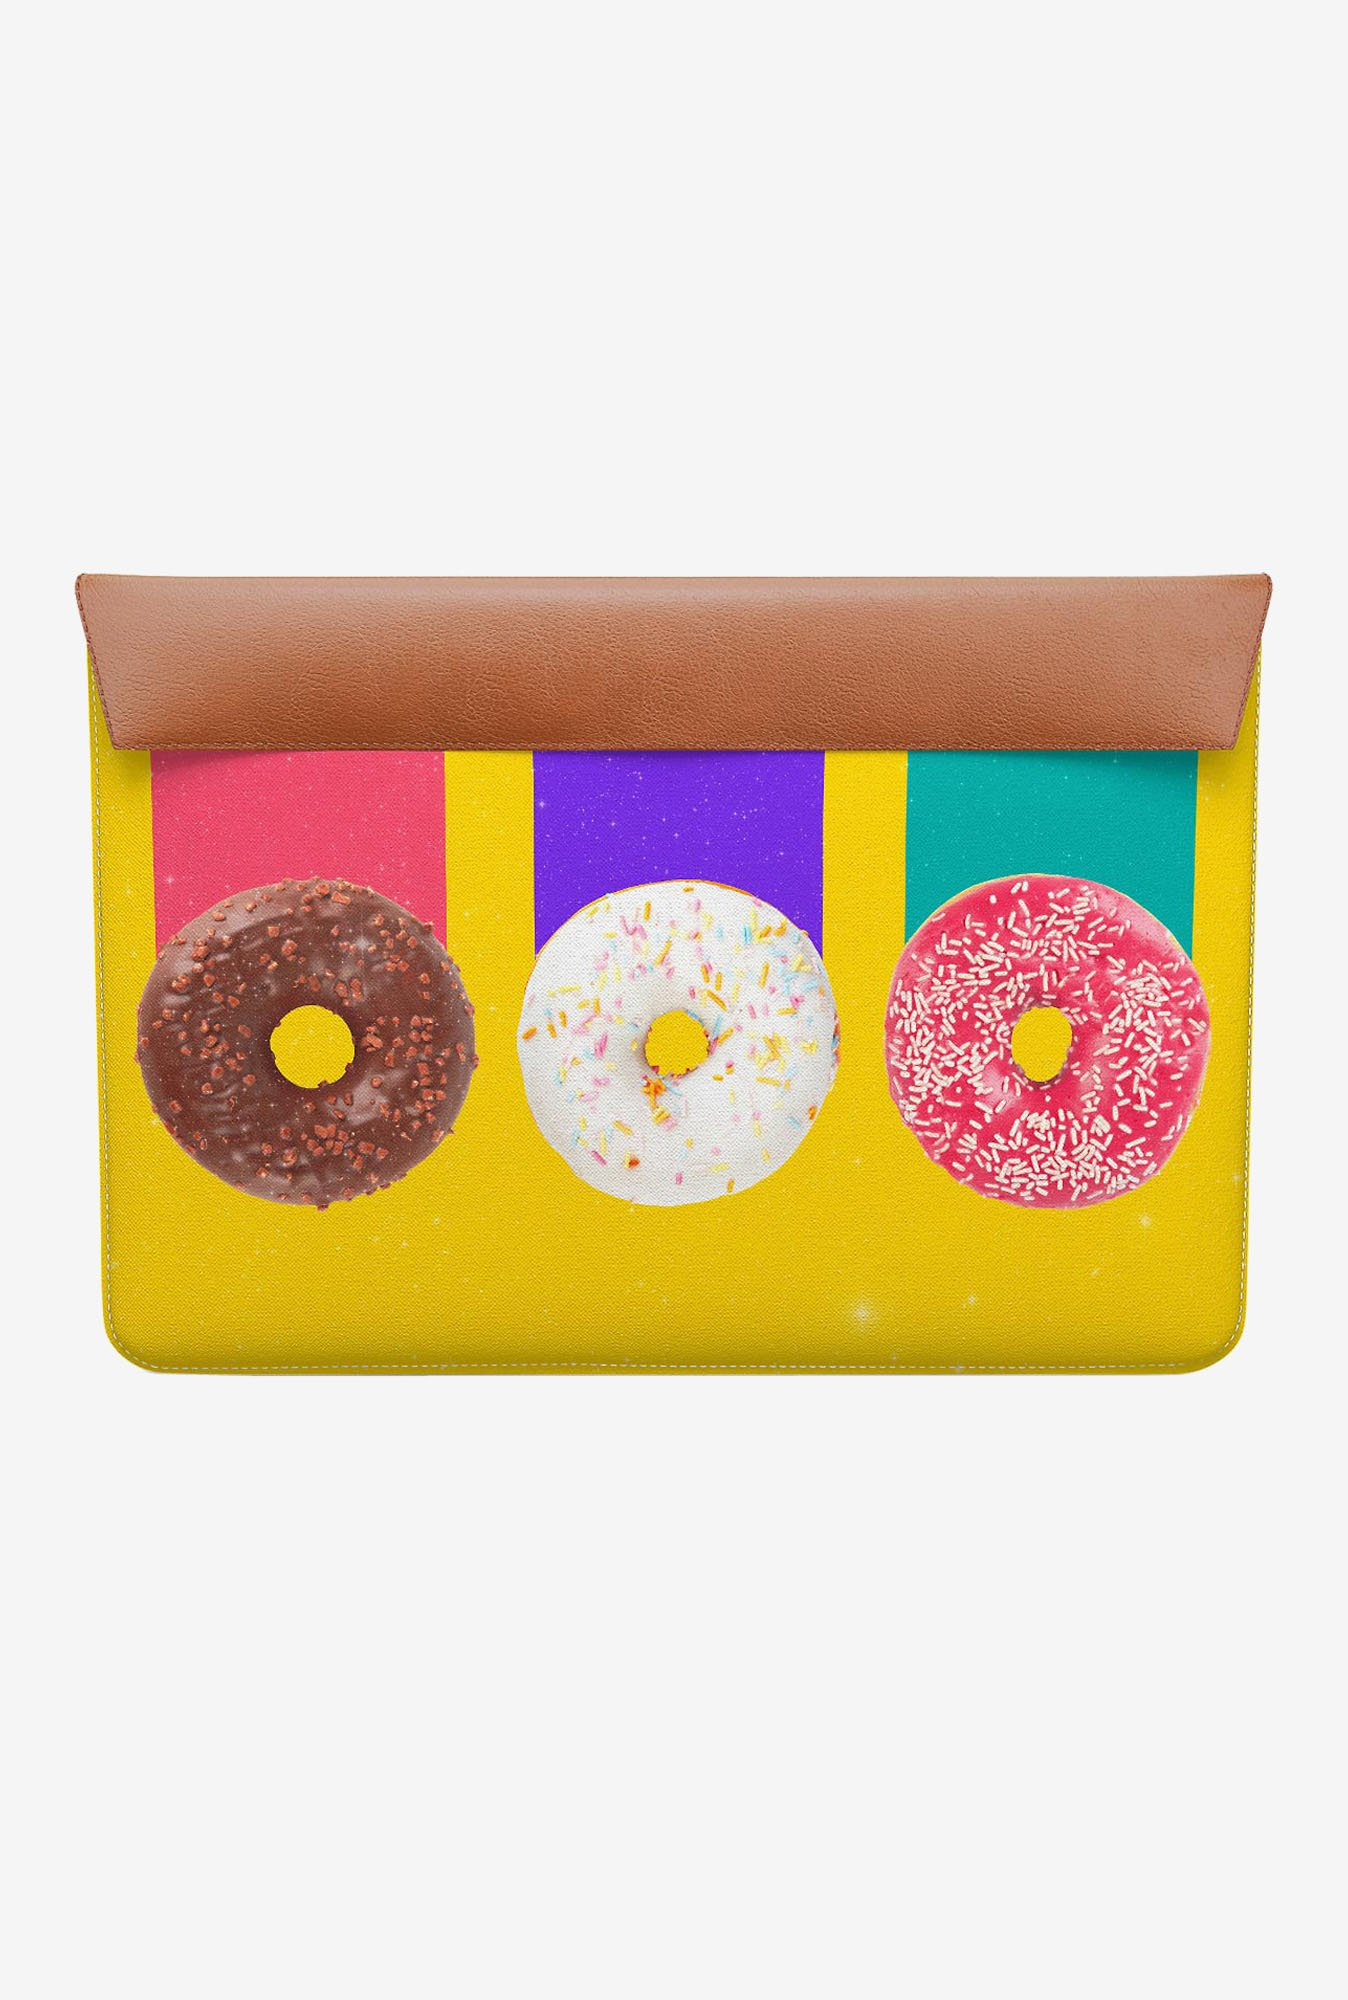 DailyObjects Trio Donuts MacBook 12 Envelope Sleeve